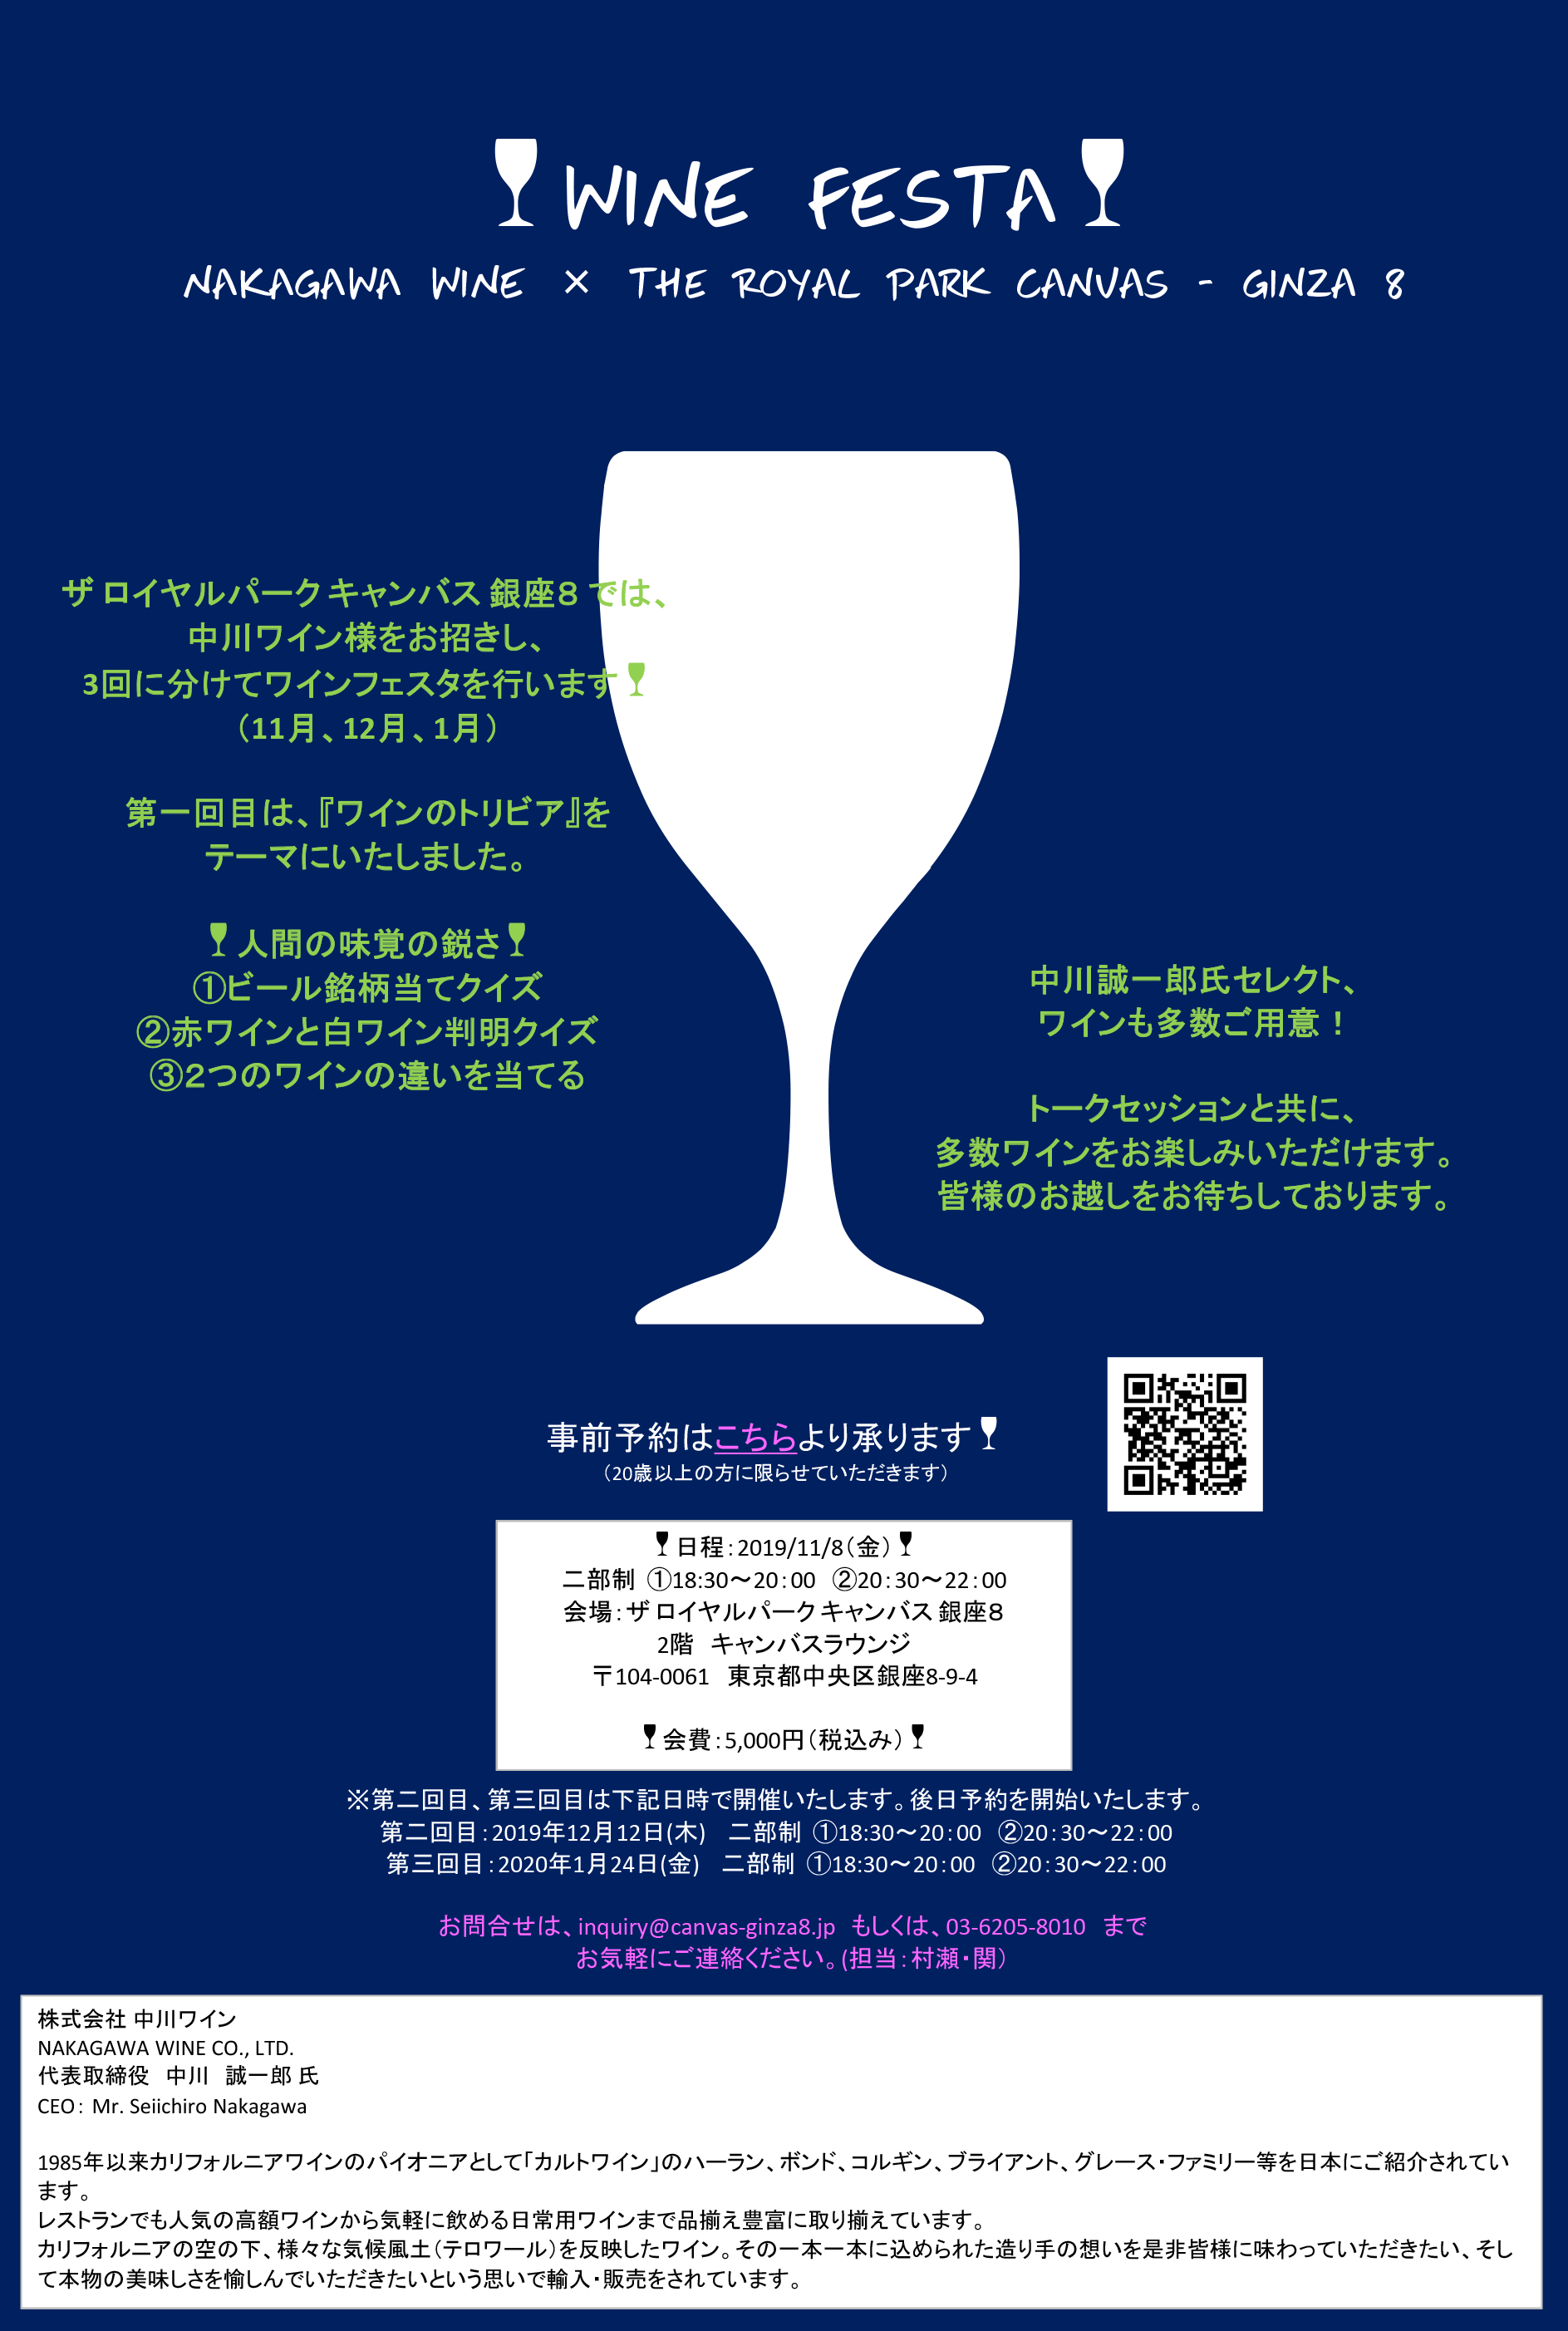 11/8(金)18:30~「WINE FESTA」 NAKAGAWA WINE × The Royal Park Canvas – Ginza 8